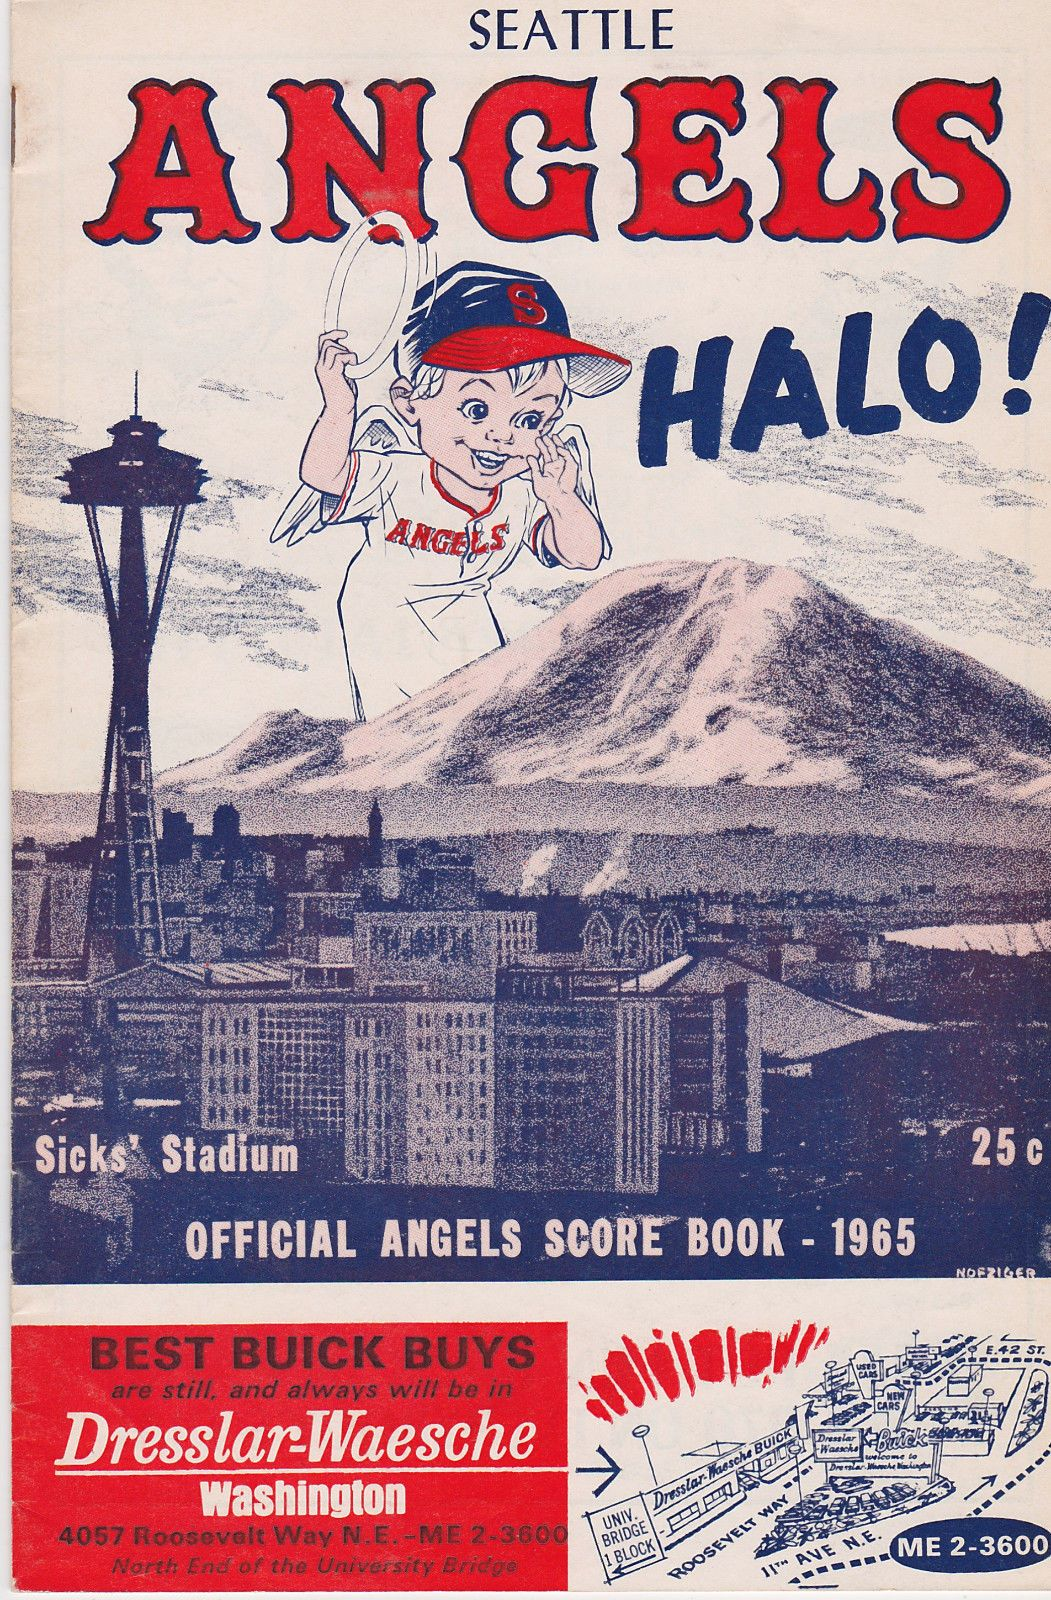 1965 Seattle Angels (AAA ball) scorebook (With images